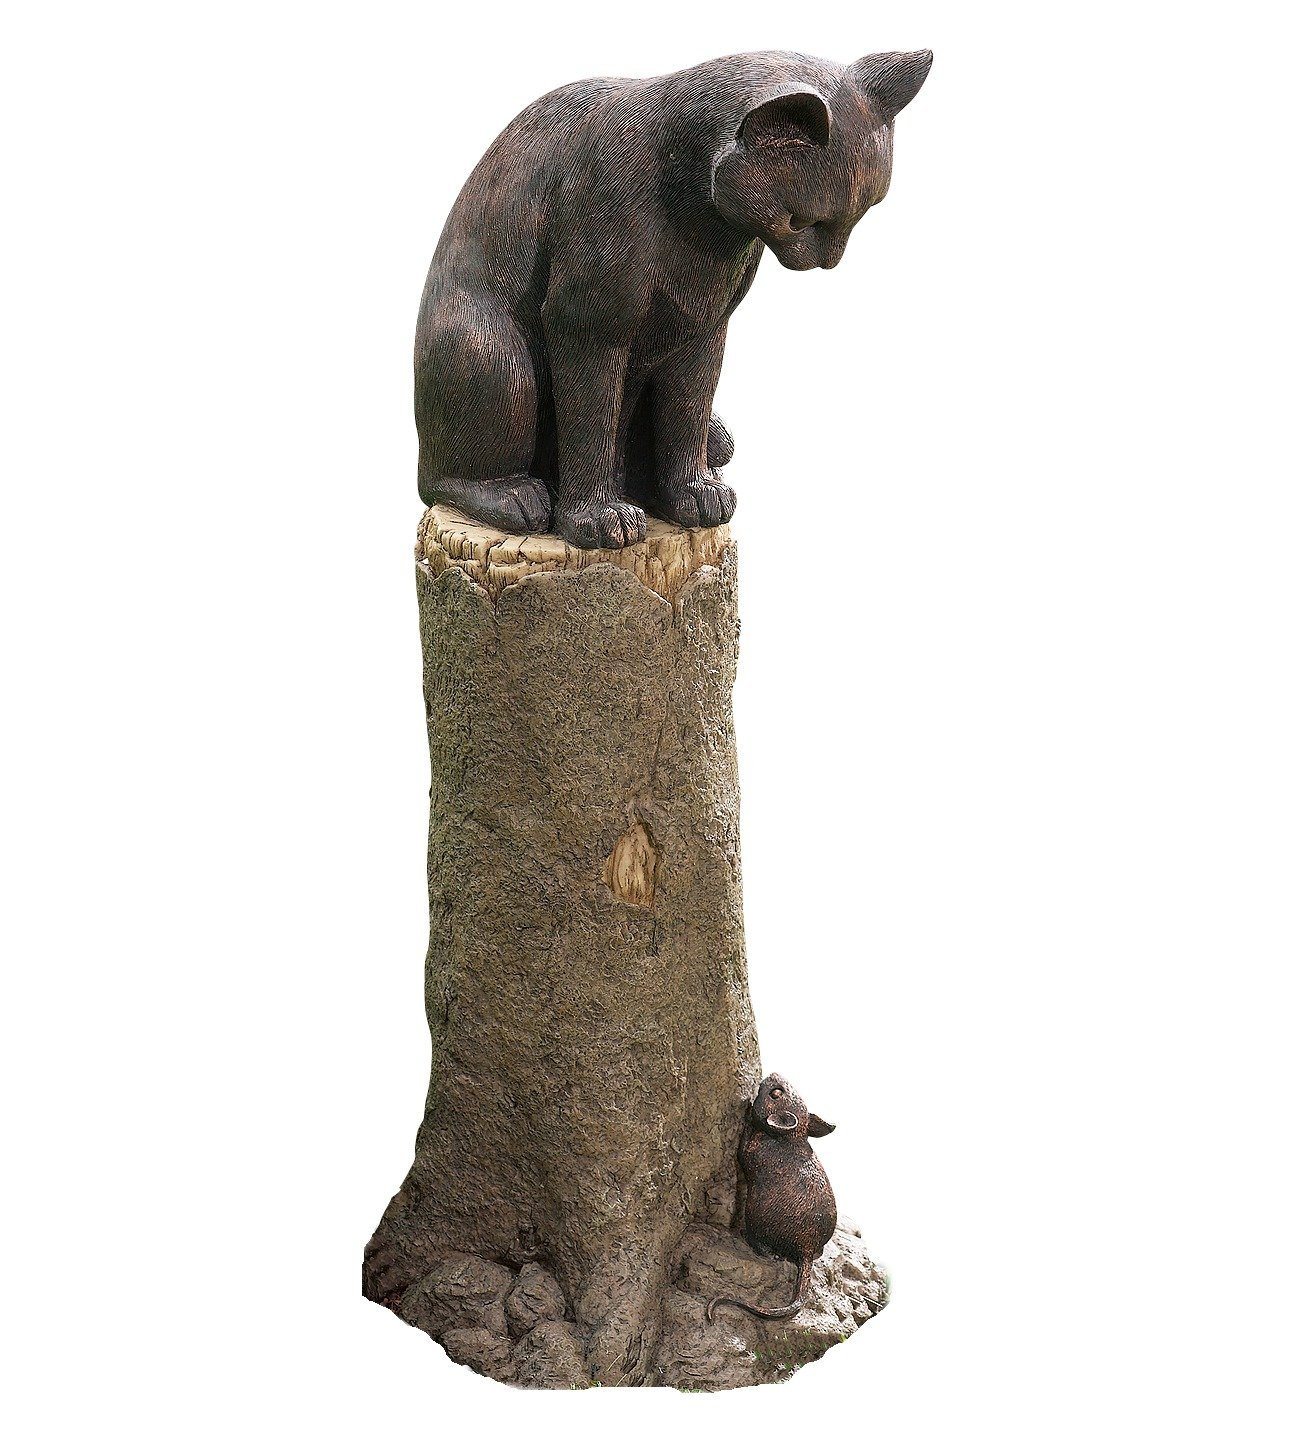 Exceptionnel Amazon.com : Plow U0026 Hearth Cat And Mouse Outdoor Garden Decor, Weatherproof  Resin, Bronze Colored Finish, 10 In L X 11 1/2 In W X 23 In H : Outdoor  Statues ...